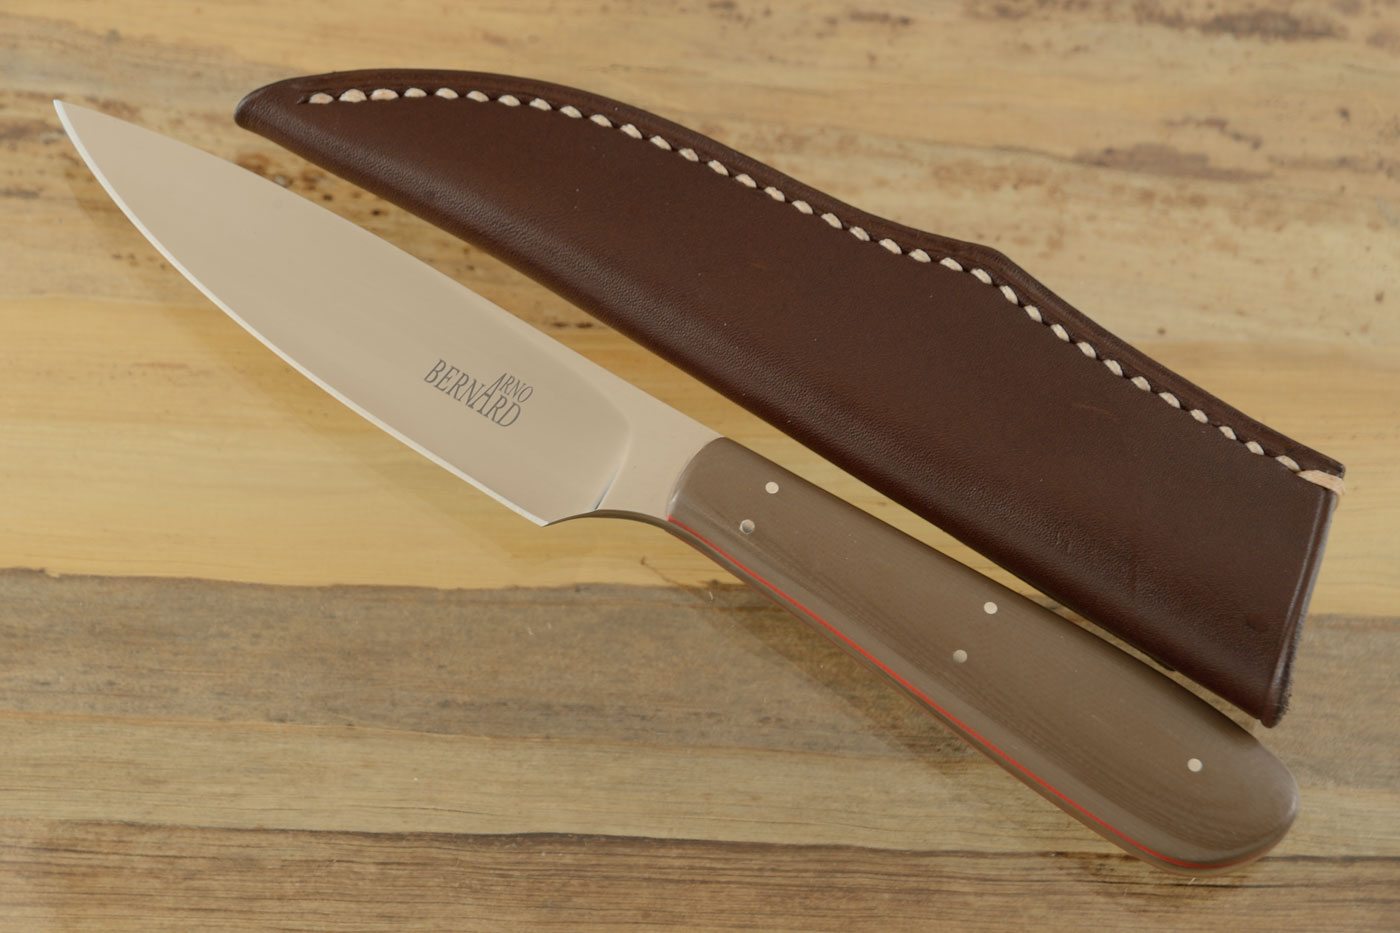 Utility/Parer with Brown G10